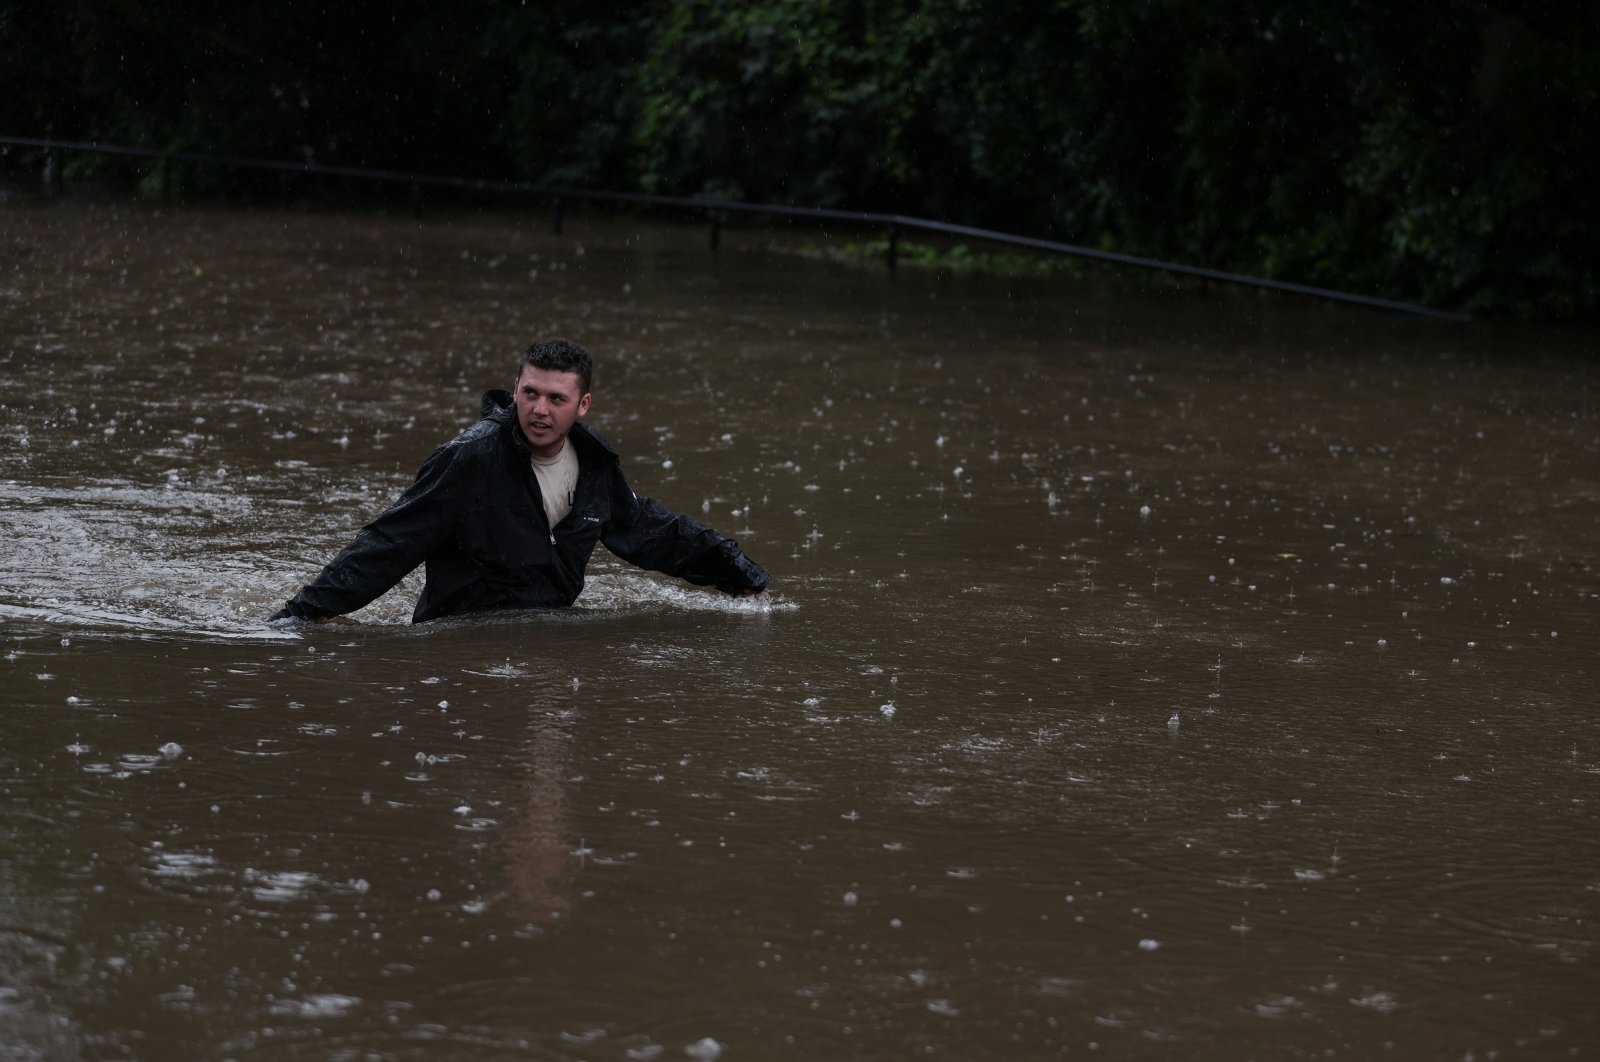 A man wades through floodwaters on a residential street near the swollen Nepean River as the state of New South Wales experiences widespread flooding and severe weather, in Sydney, Australia, March 21, 2021. (Reuters Photo)